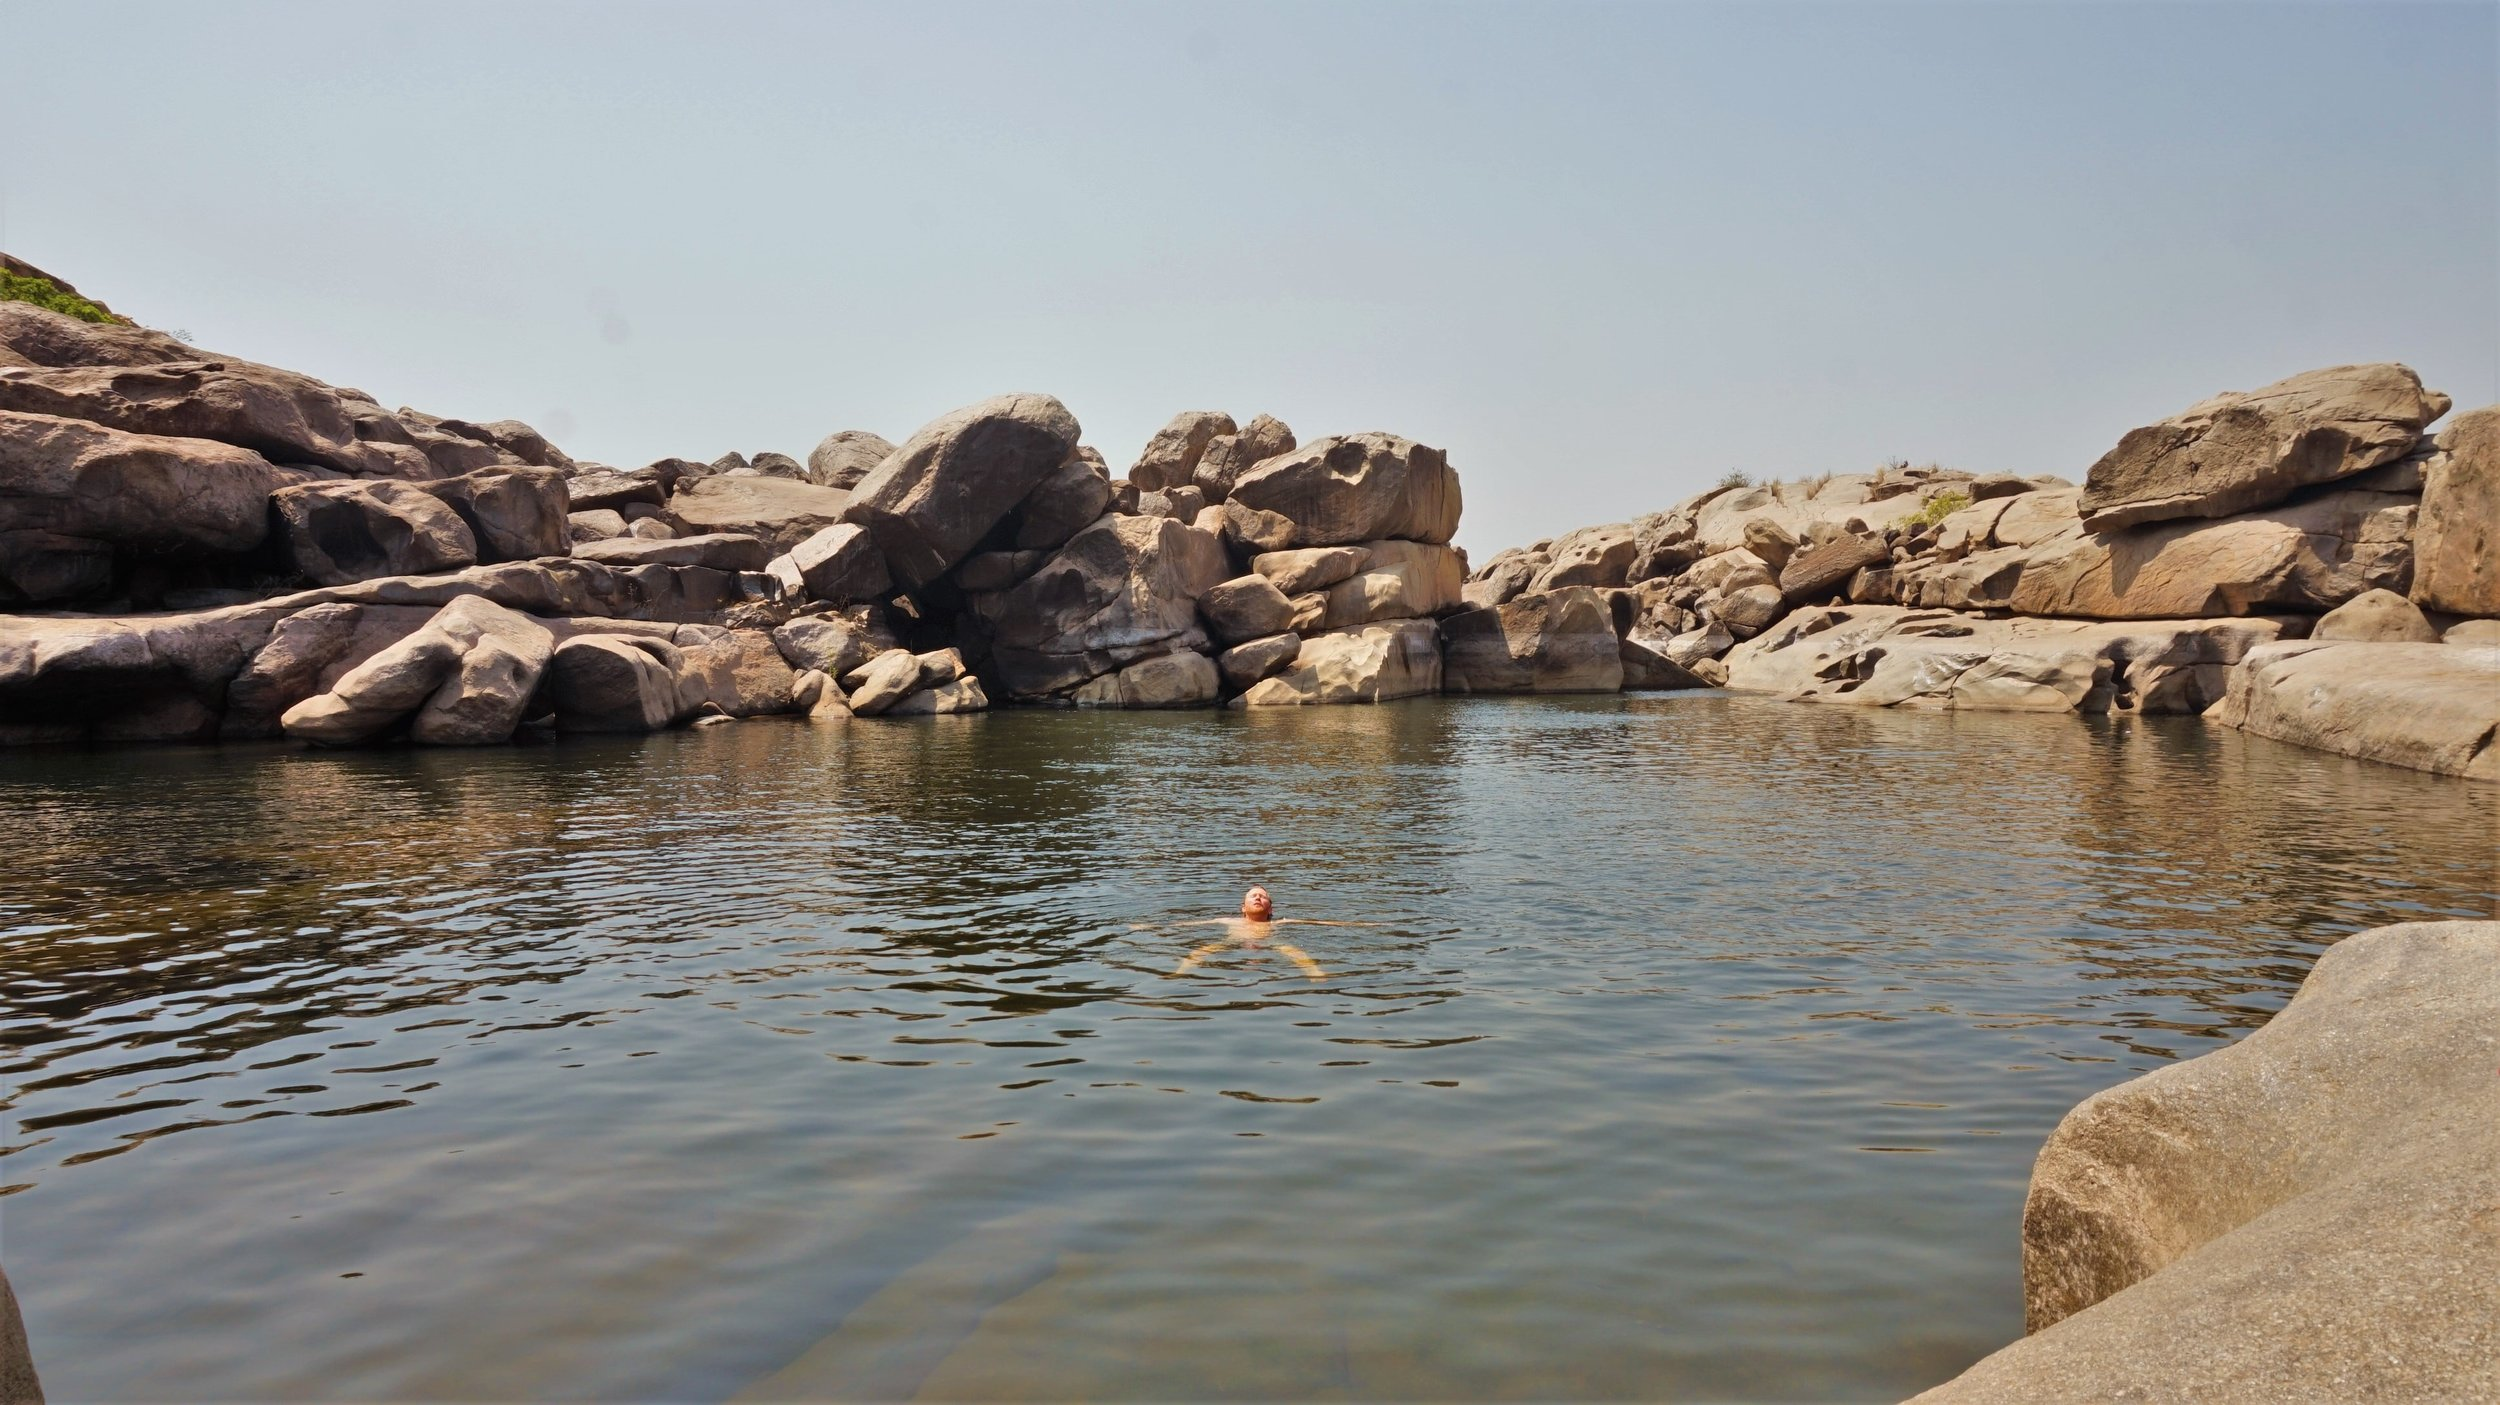 The Hampi waterfall is one of the best places to visit in Hampi for a refreshing bath.